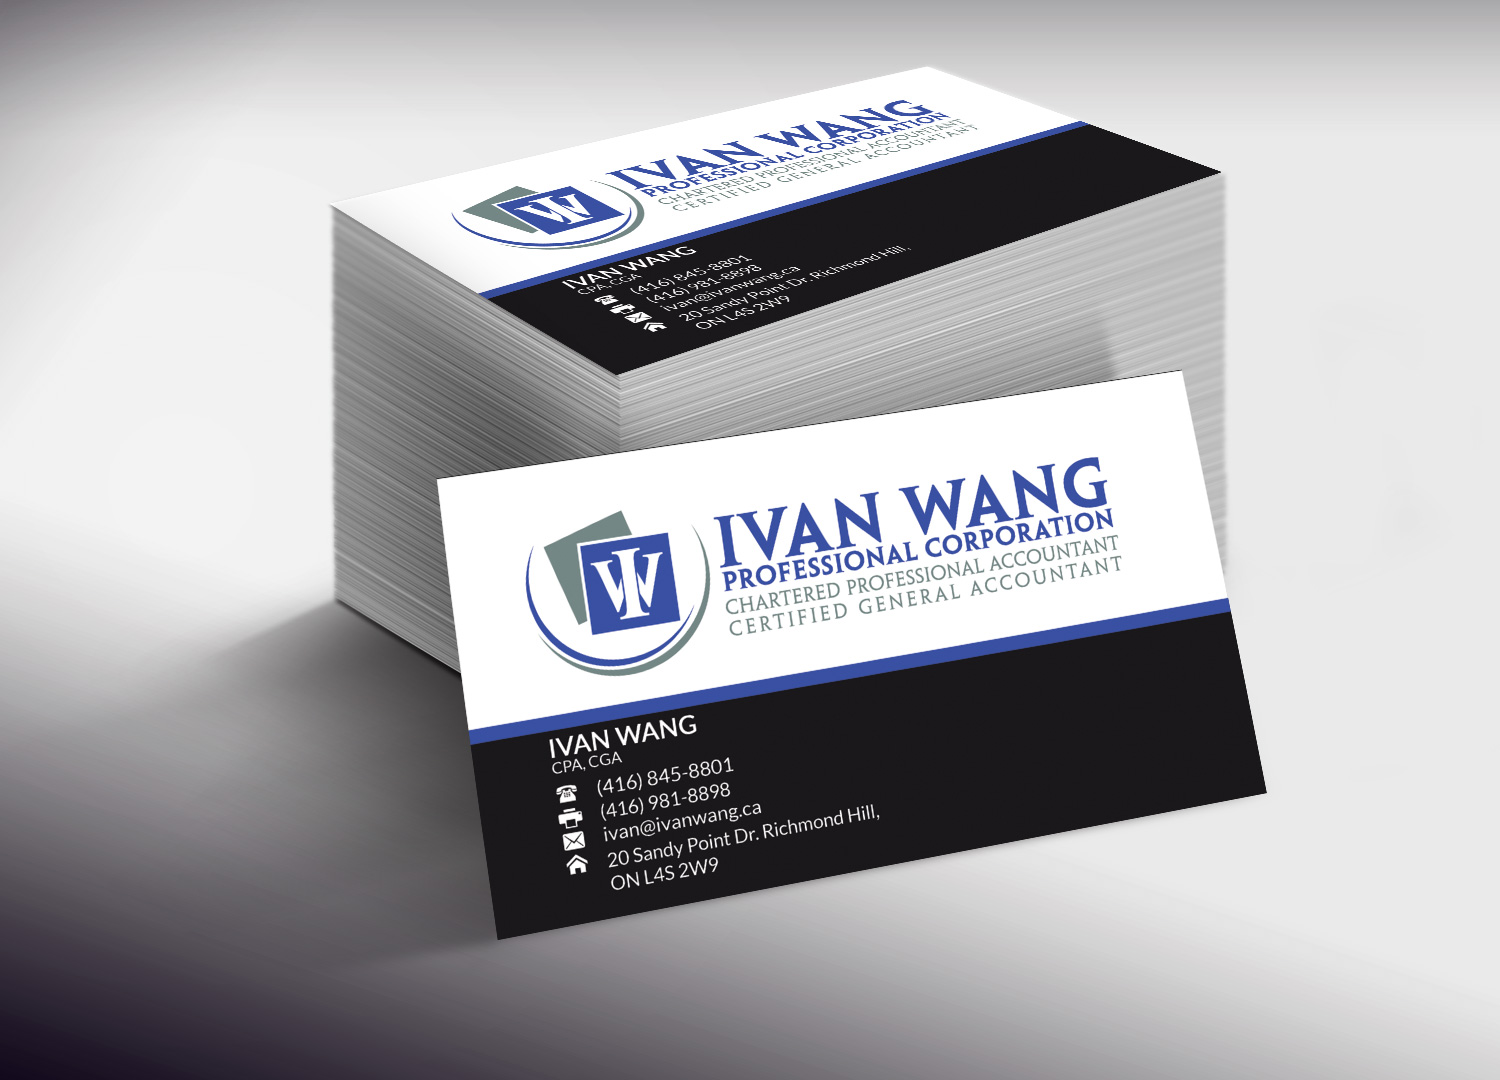 Business card design for ivan wang by lanka ama design 4703550 business card design by lanka ama for chartered professional accounting firm needs a business card design magicingreecefo Image collections